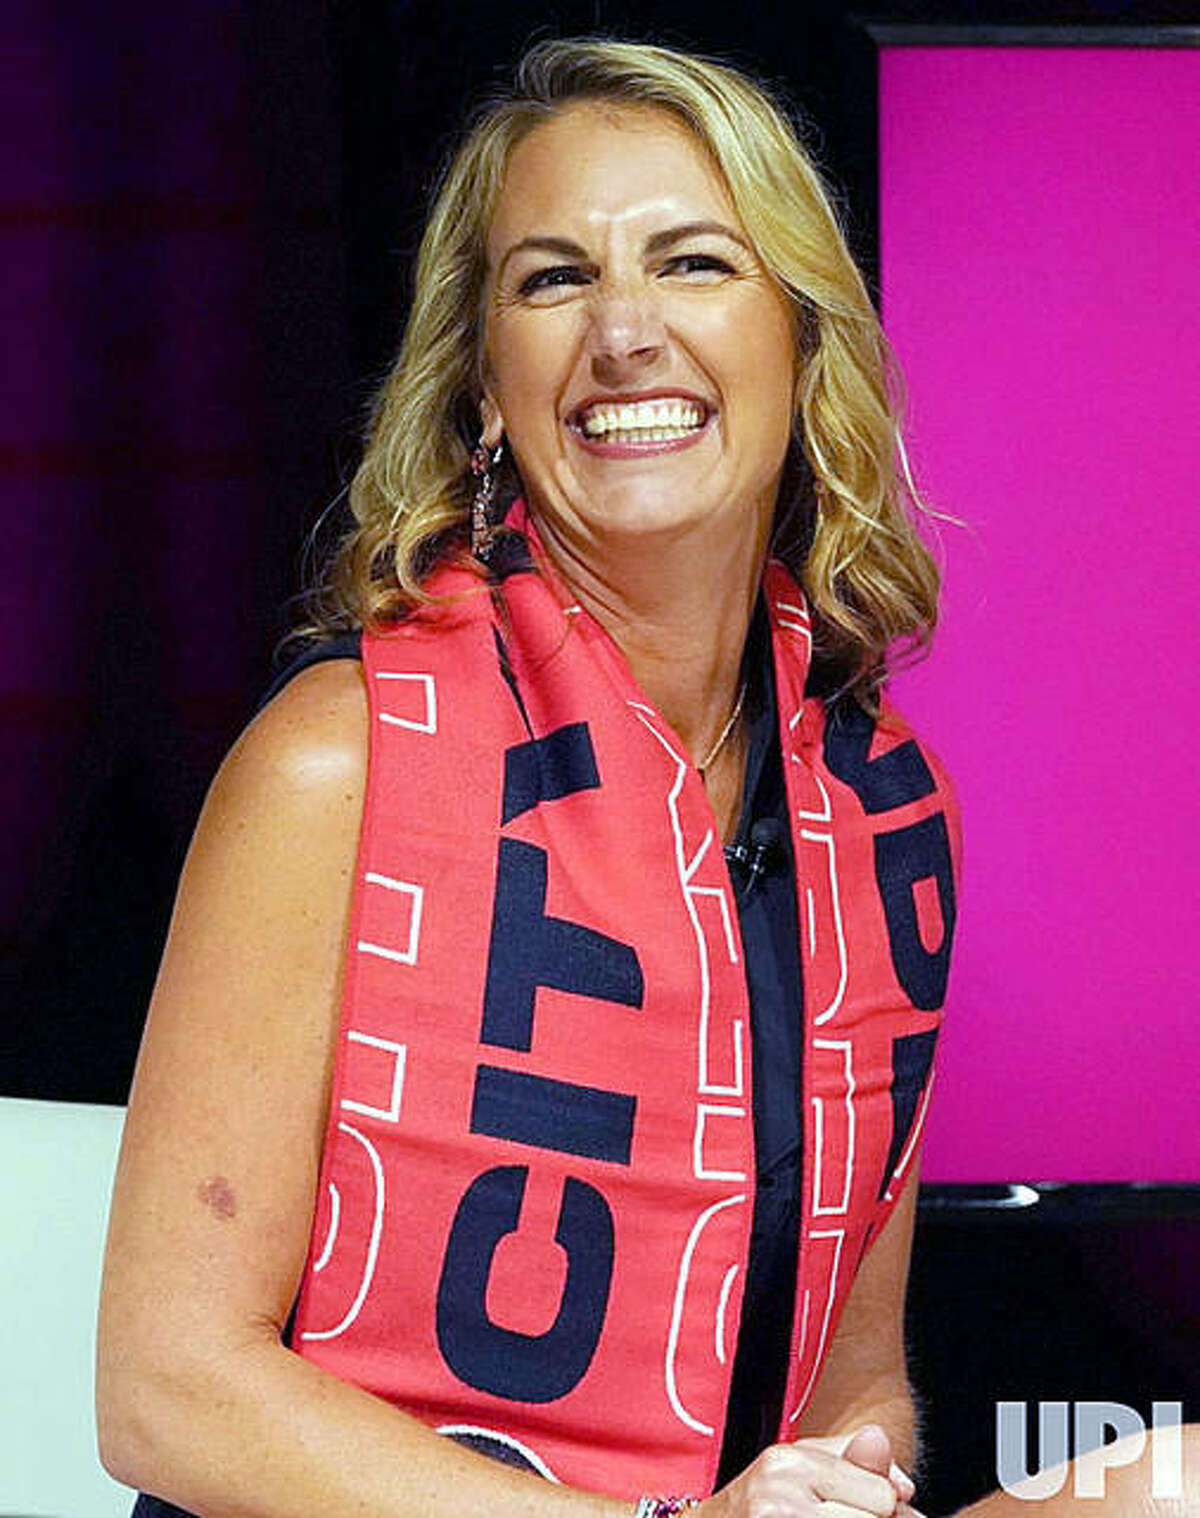 St. Louis City SC CEO Carolyn Kindle Betz is all smiles following the announcement of the name of the soccer team during a virtual press conference last month. The team, which begins play in 2023, received deposits on some 50,000 season tickets earlier this week.